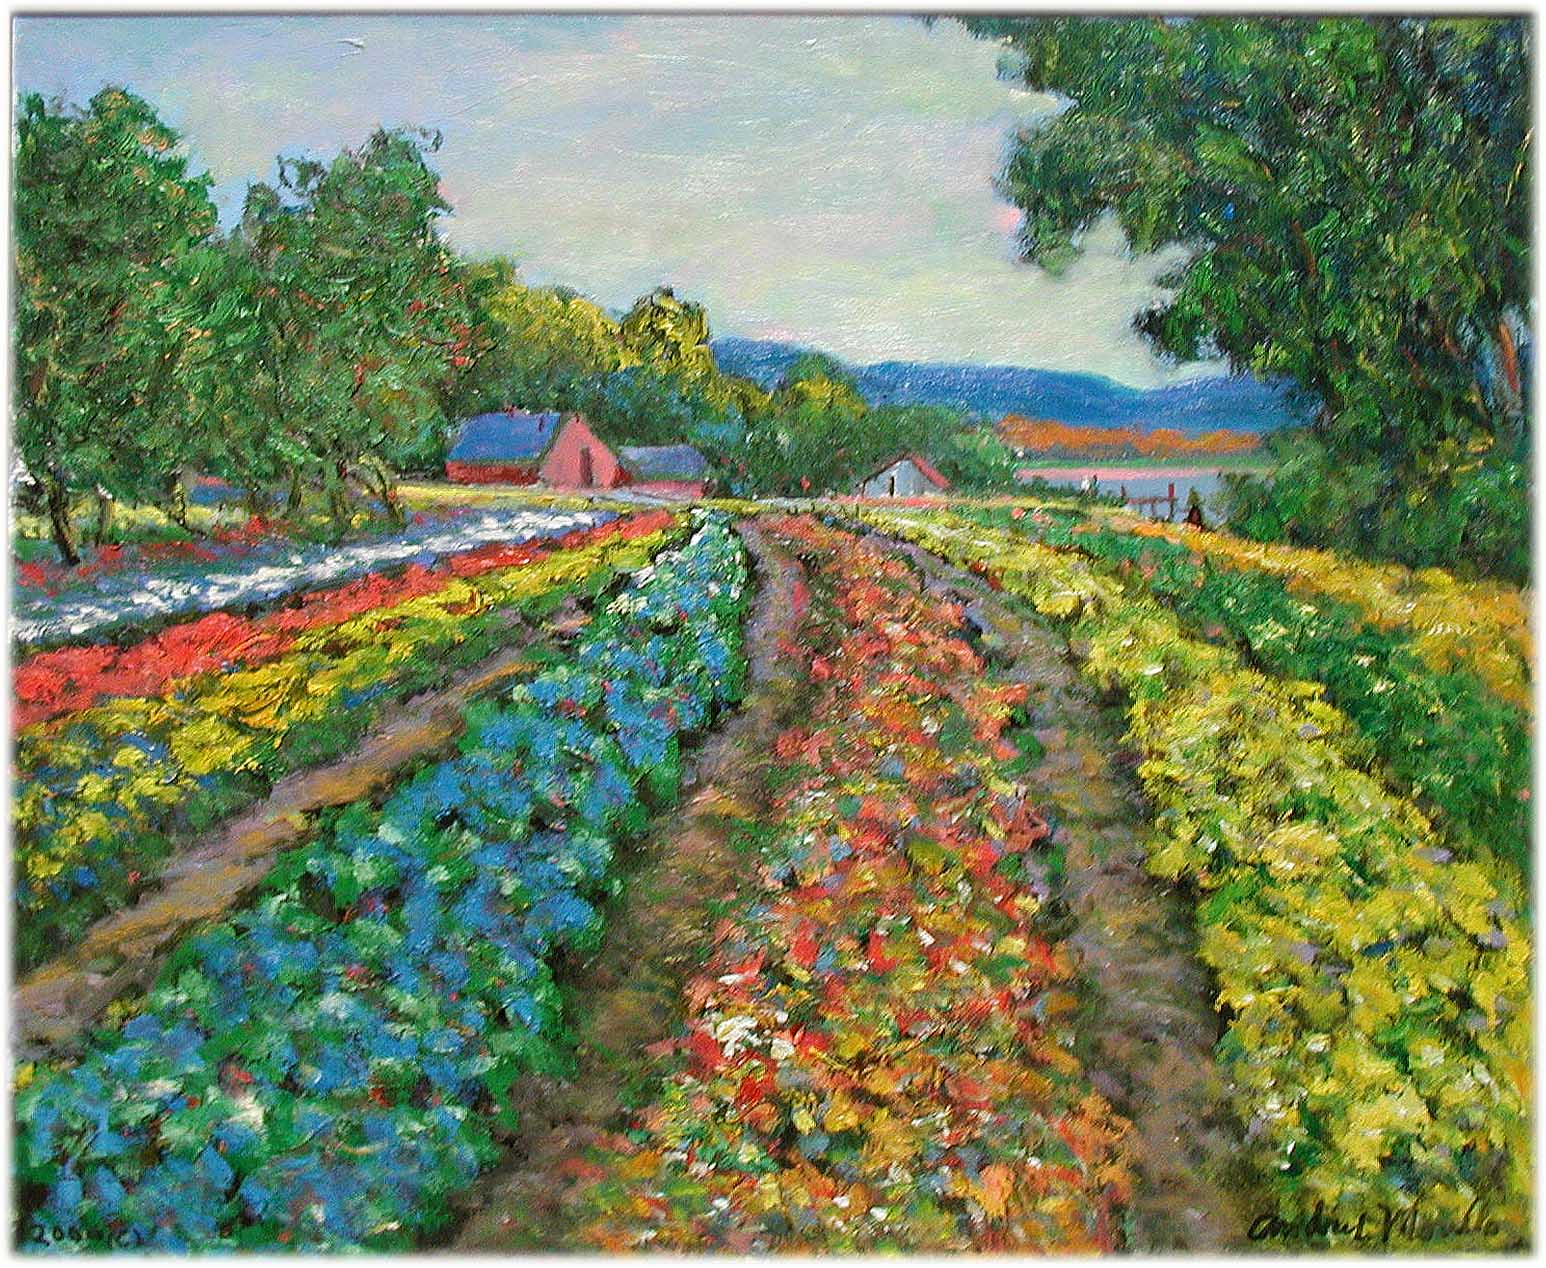 Morning at the Flower... by  Andres  Morillo - Masterpiece Online